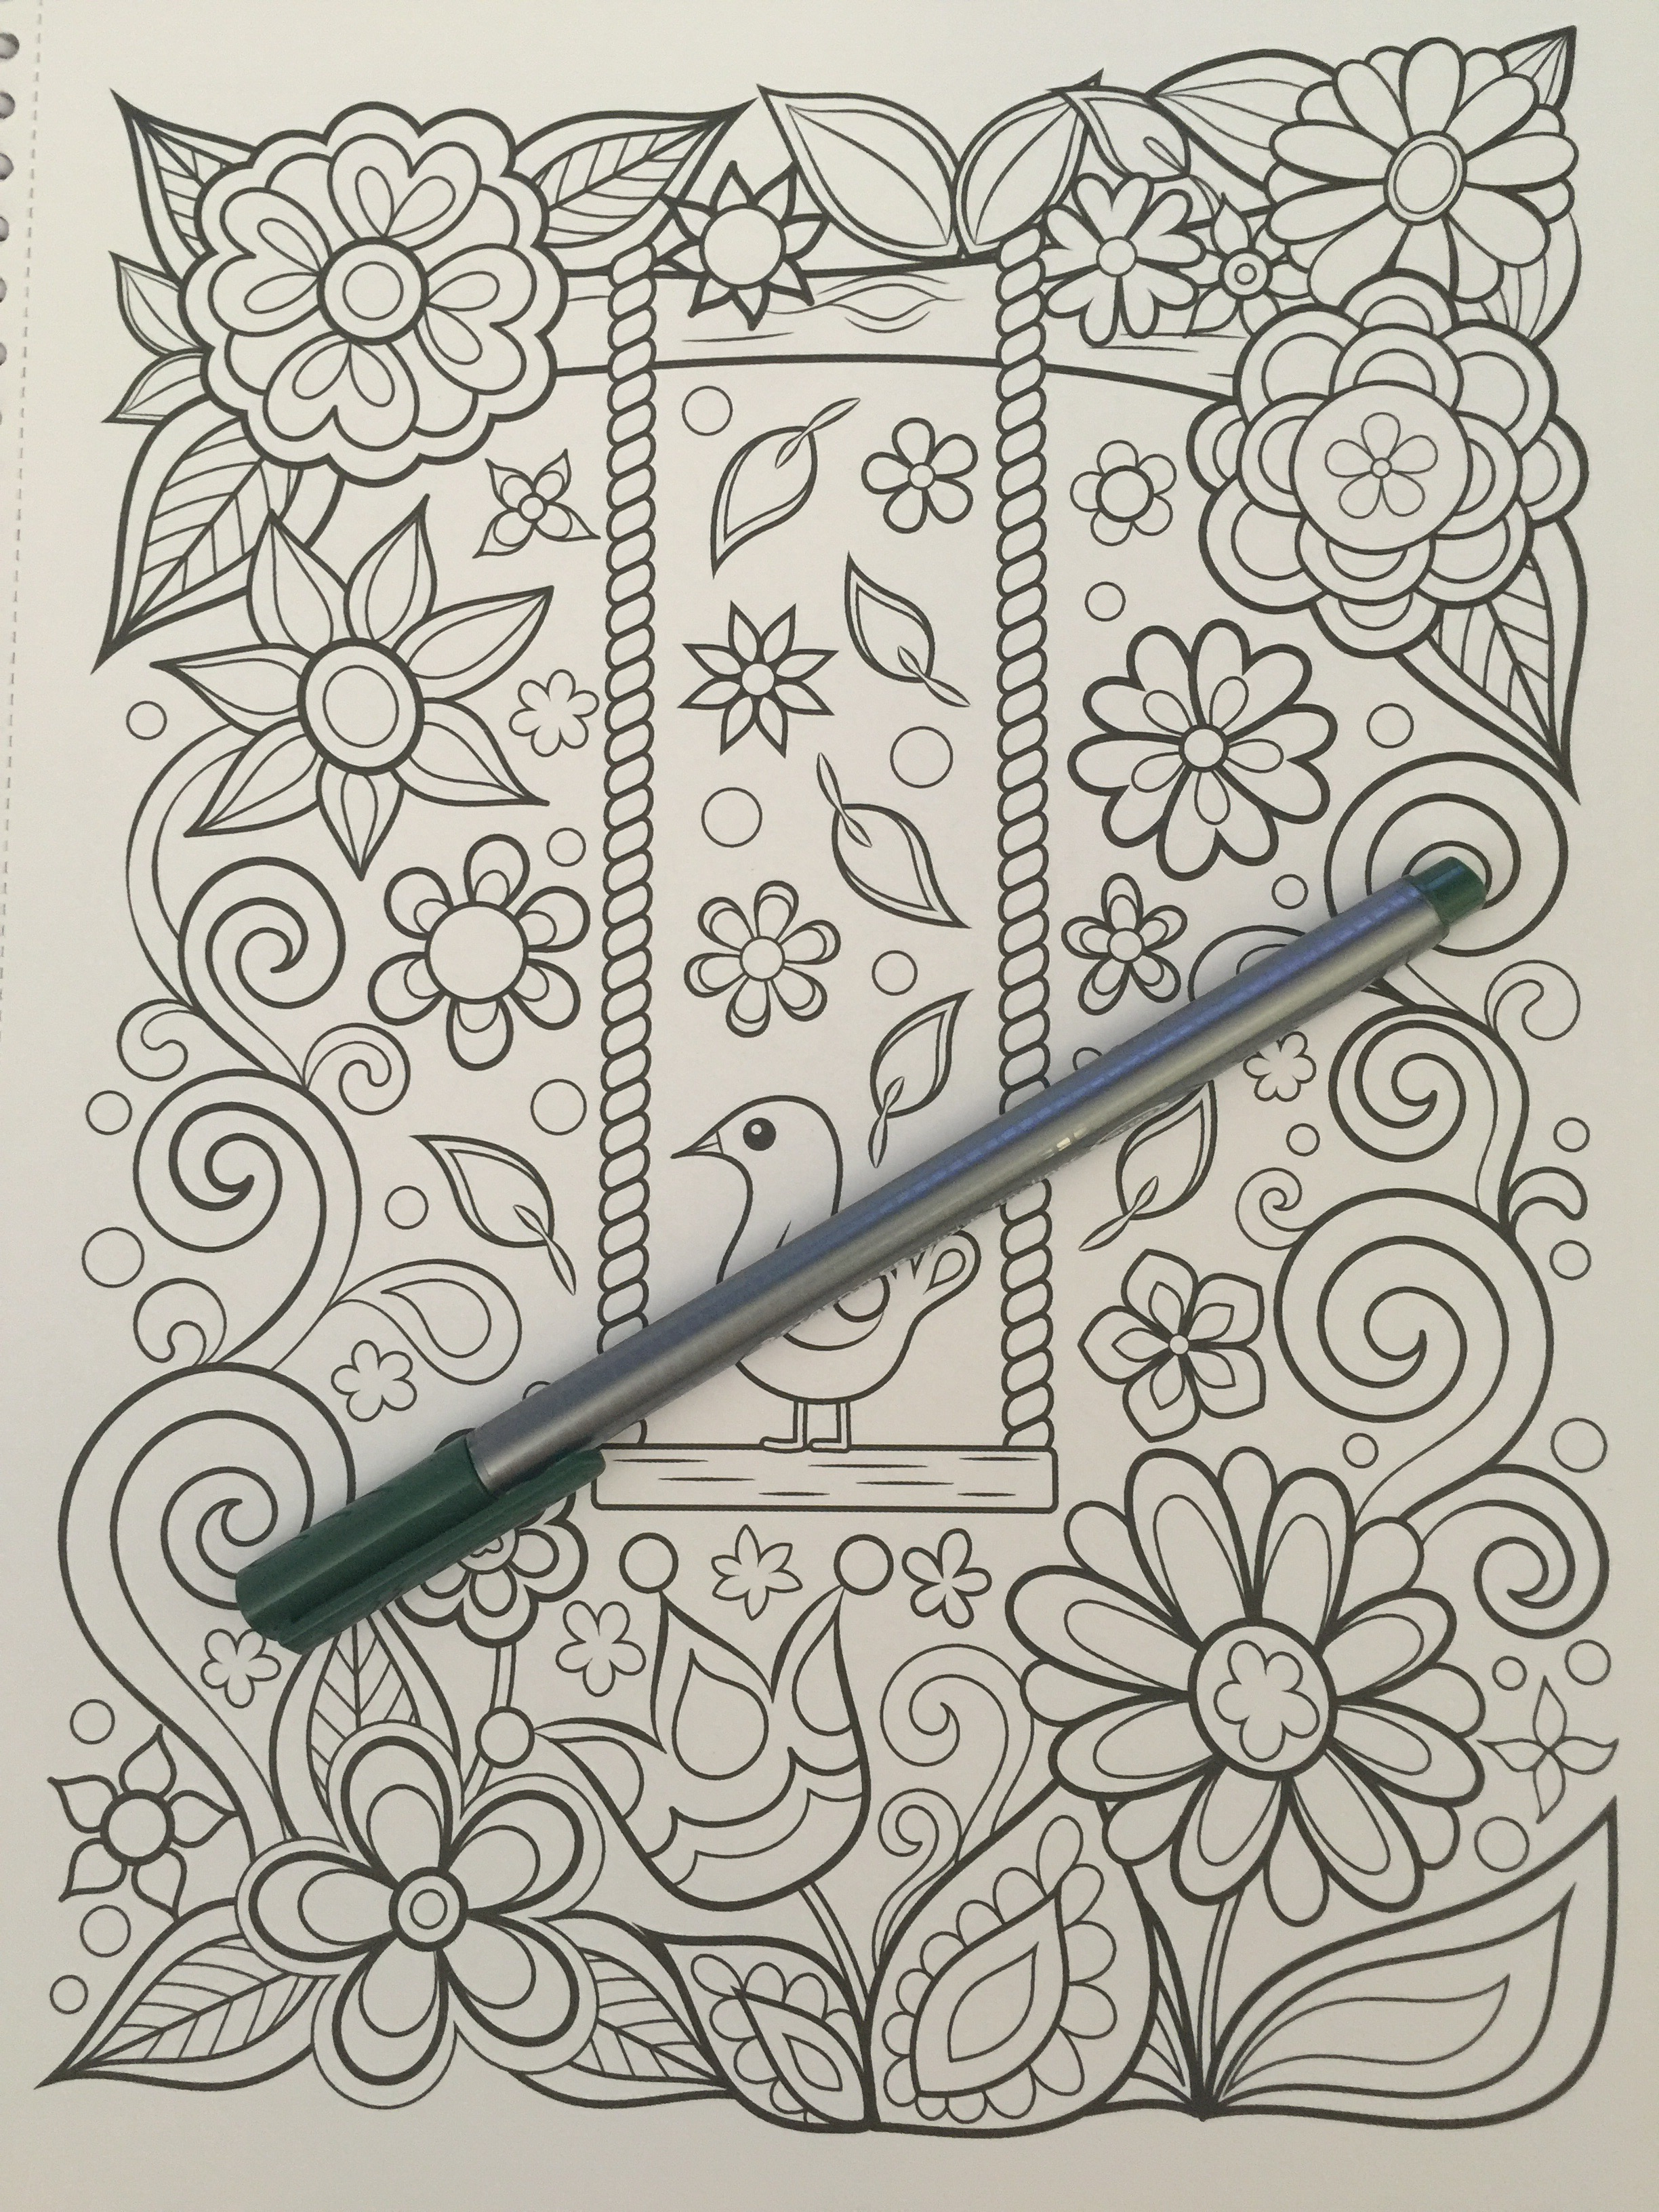 coloring adult review completed adult colouring color colour pencil pens mindfulness art therapy stress relief